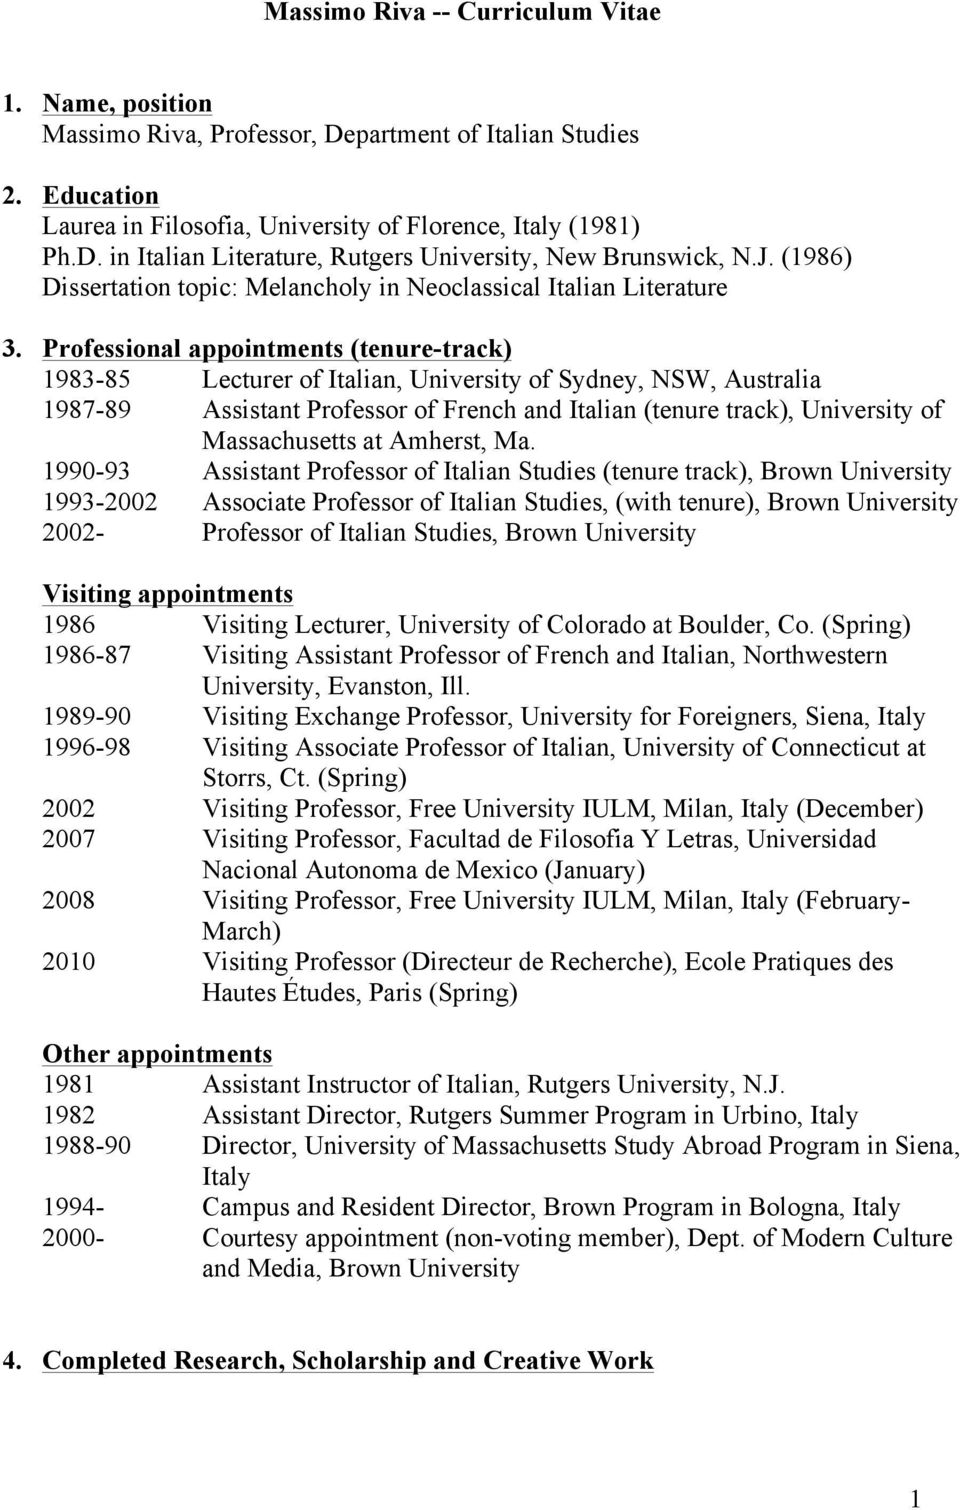 Professional appointments (tenure-track) 1983-85 Lecturer of Italian, University of Sydney, NSW, Australia 1987-89 Assistant Professor of French and Italian (tenure track), University of